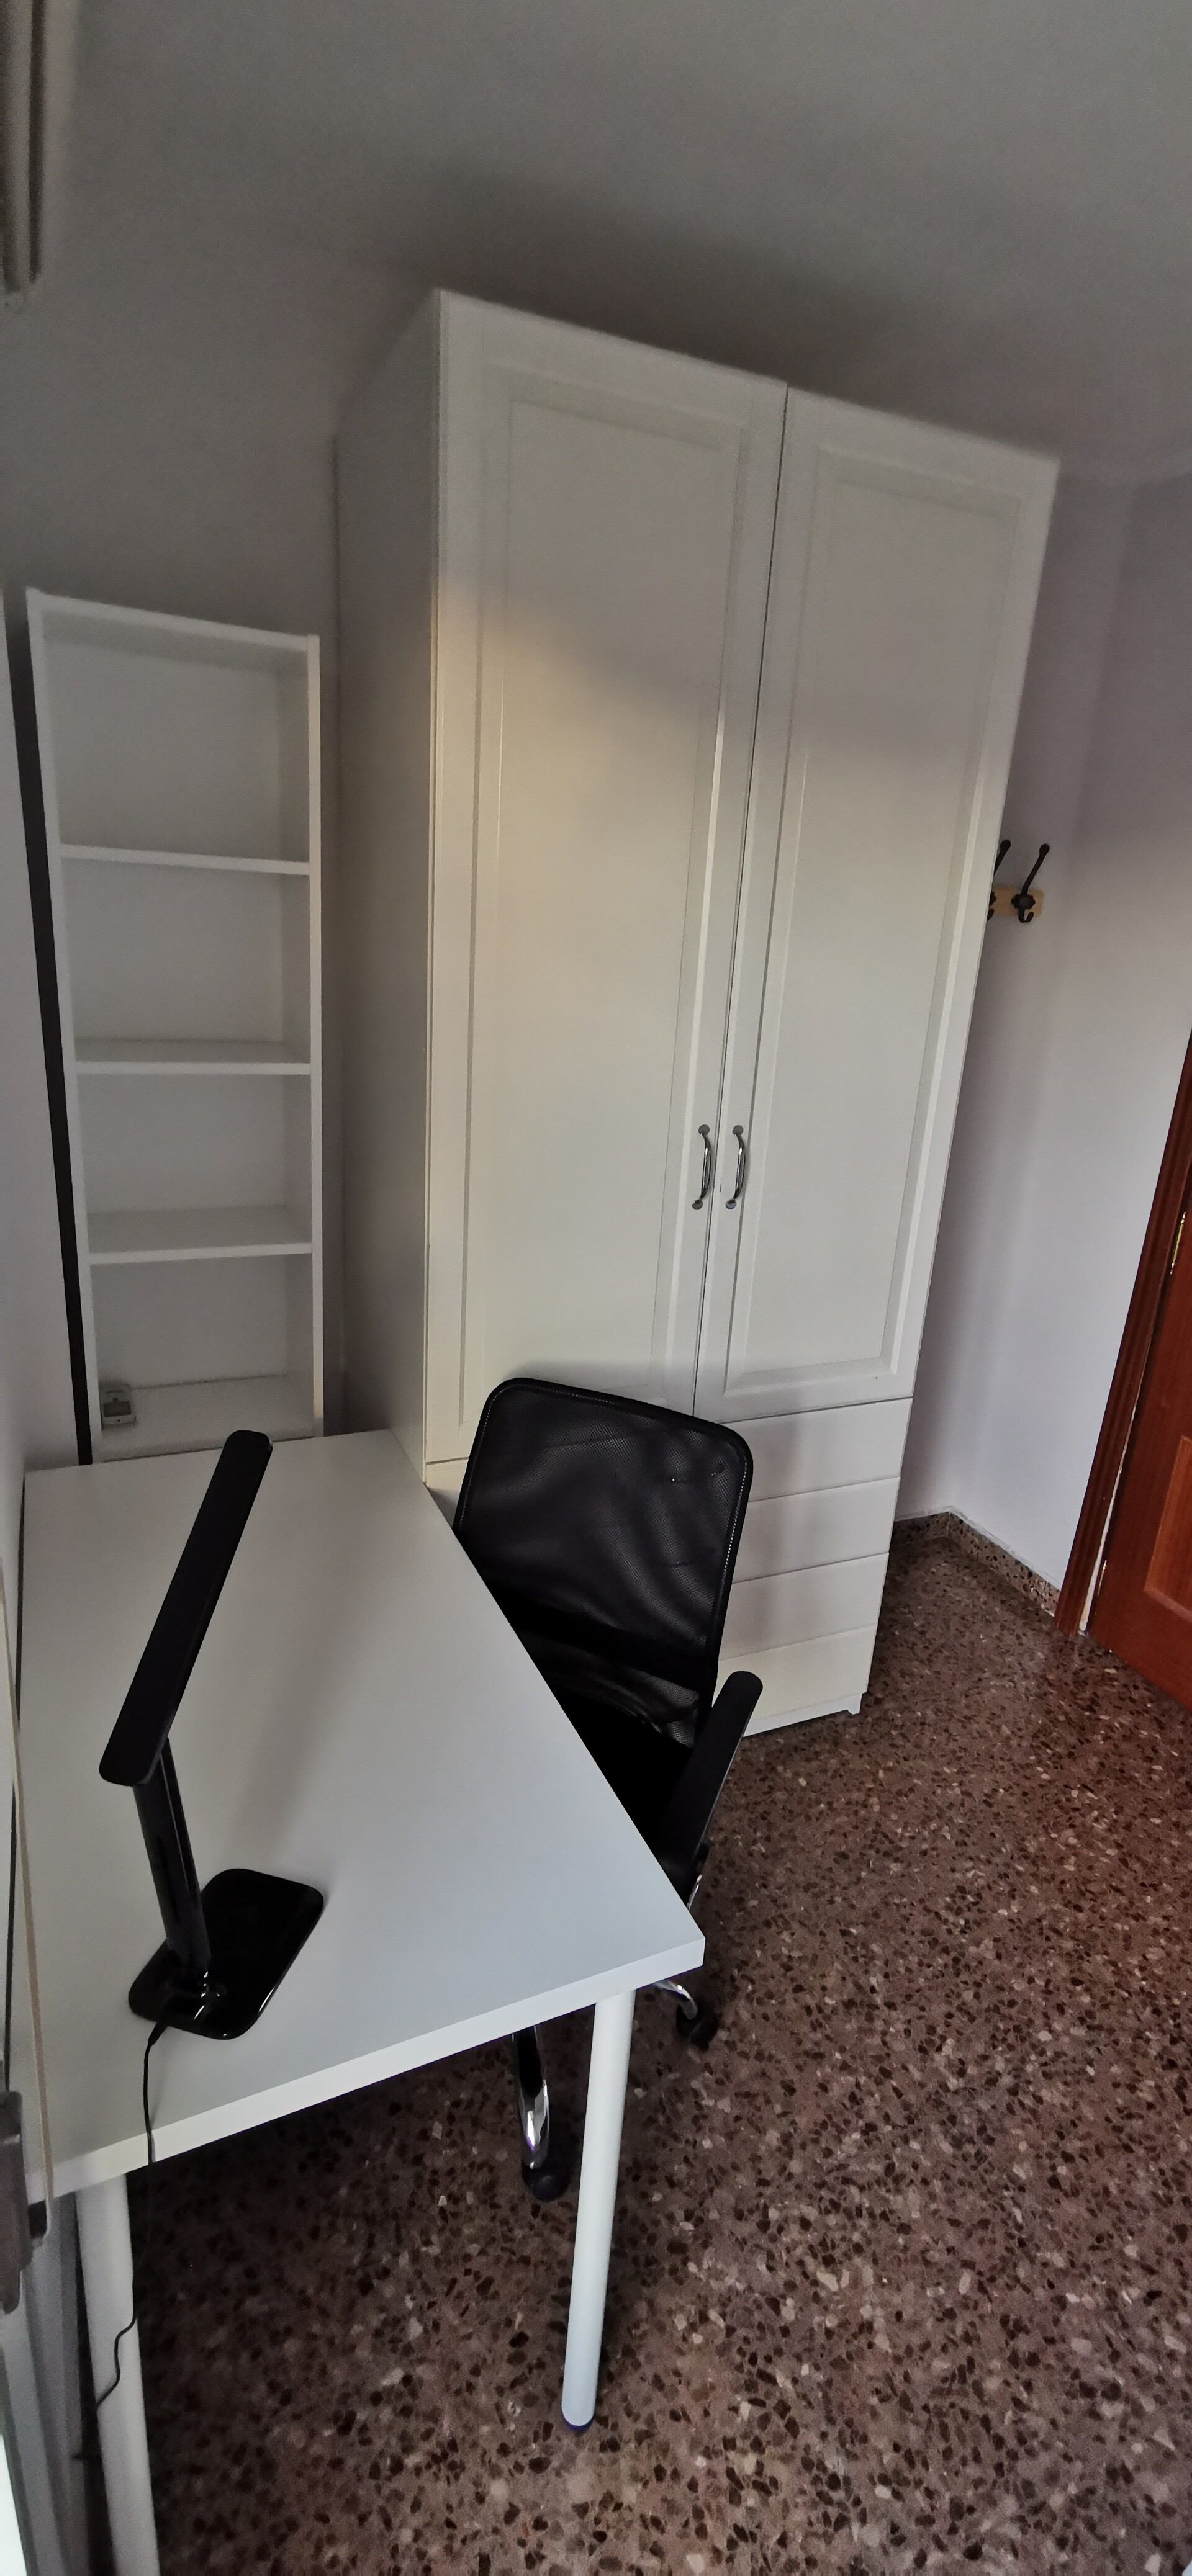 Rent room in a flat perfect for students